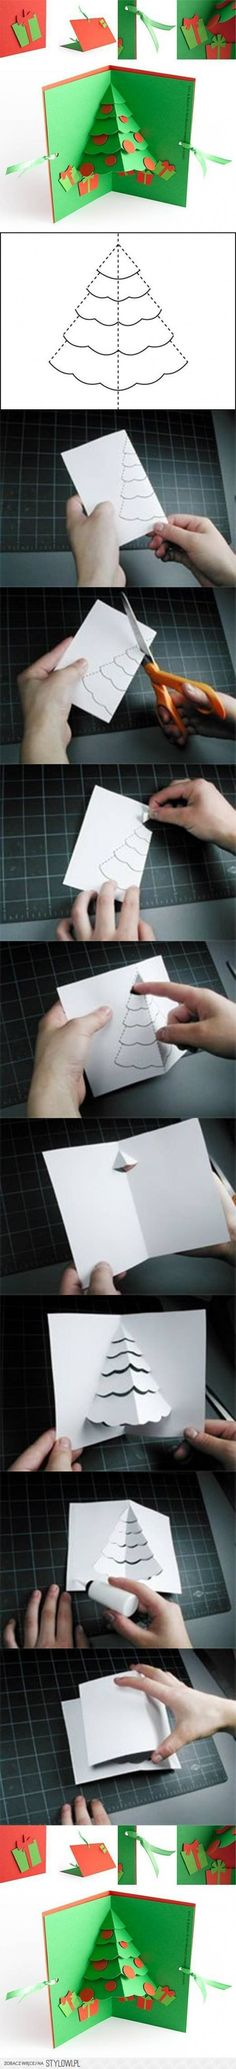 DIY Christmas Tree Pop Up Card diy christmas gifts how to tutorial christmas tree christmas gifts christmas crafts christmas decorations christmas craft christmas cards christmas crafts for kids by Ирина Дубровская How To Make Christmas Tree, Christmas Tree Cards, Noel Christmas, Christmas Crafts For Kids, Christmas Activities, Christmas Projects, Holiday Crafts, Christmas Decorations, Christmas Gifts